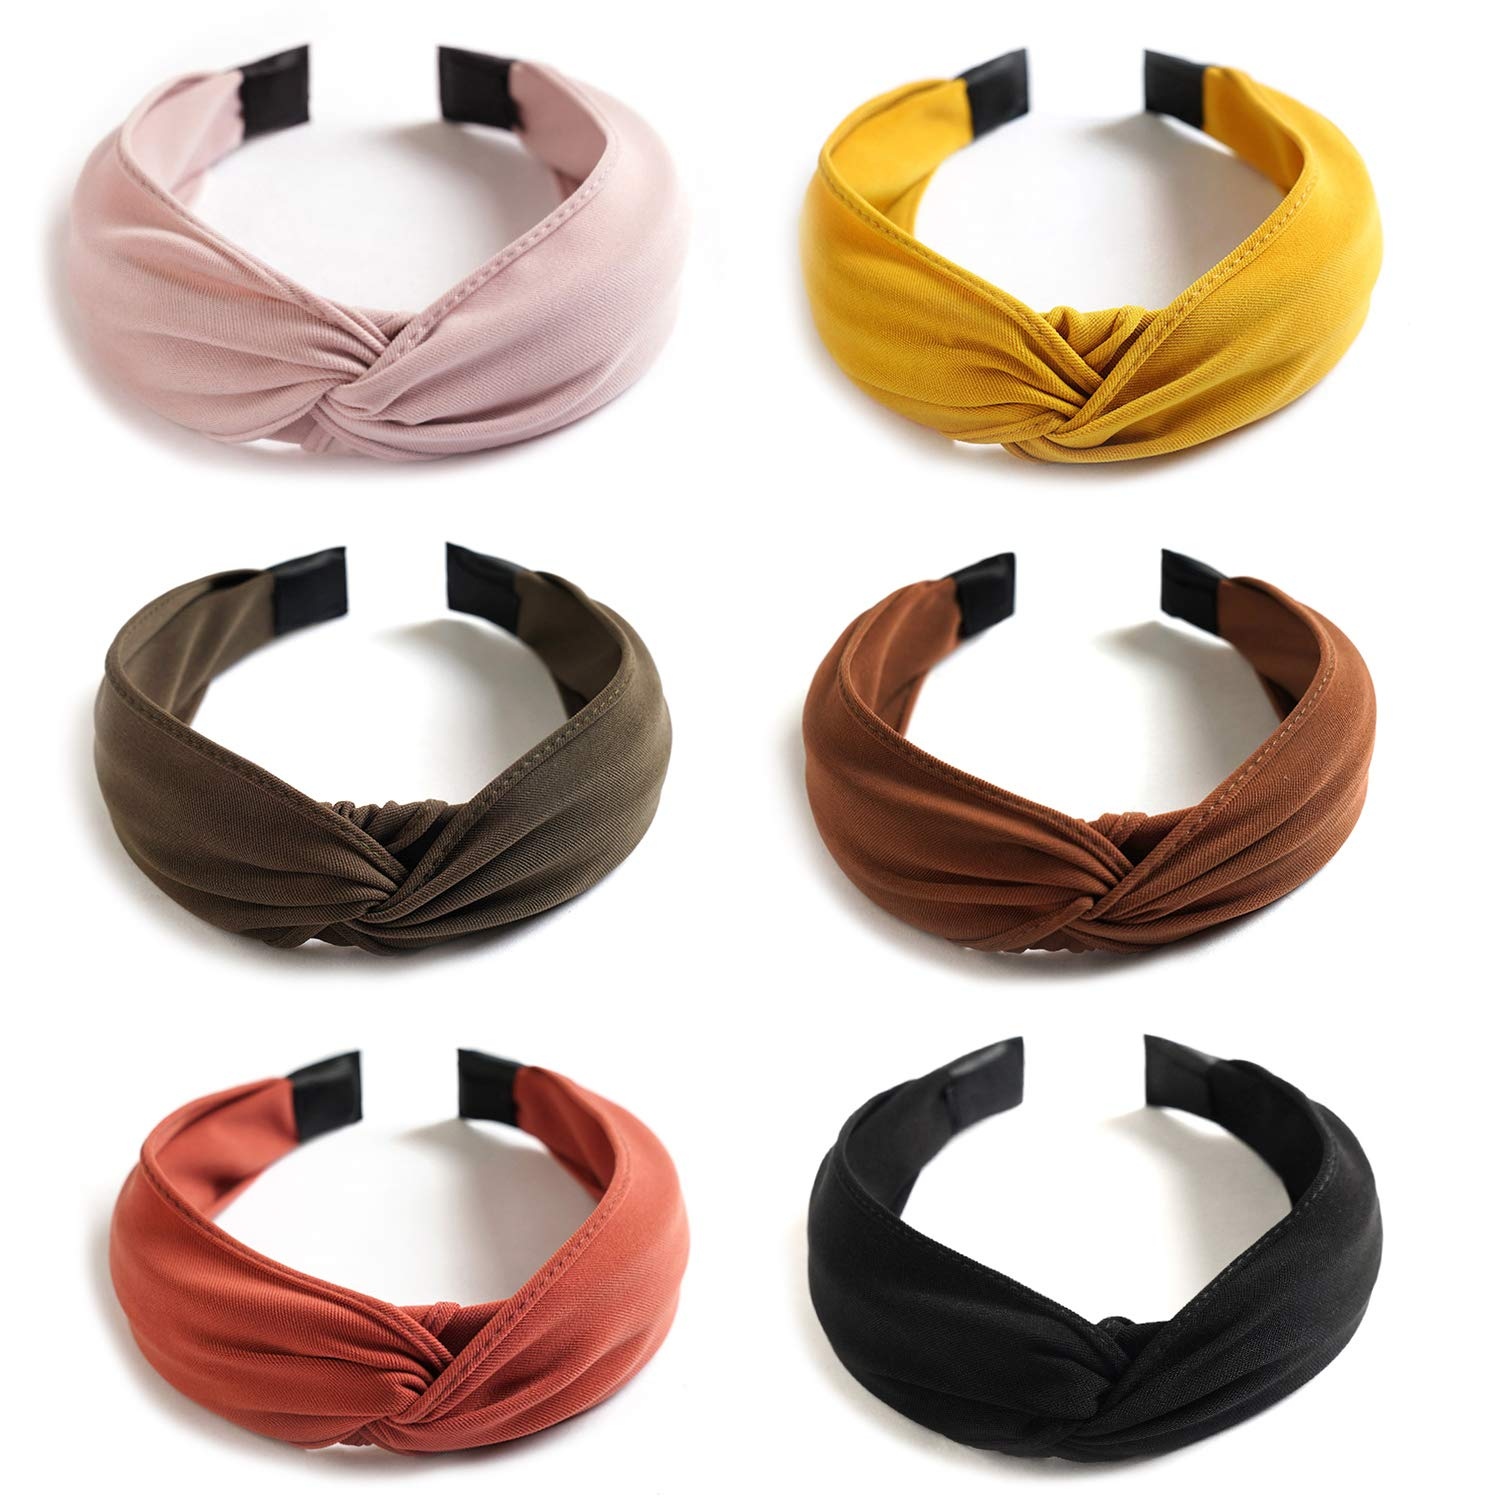 Details about  /Womens Hairband Headband Twist Wide Knot Hair Hoop Bands Wraps Accessories